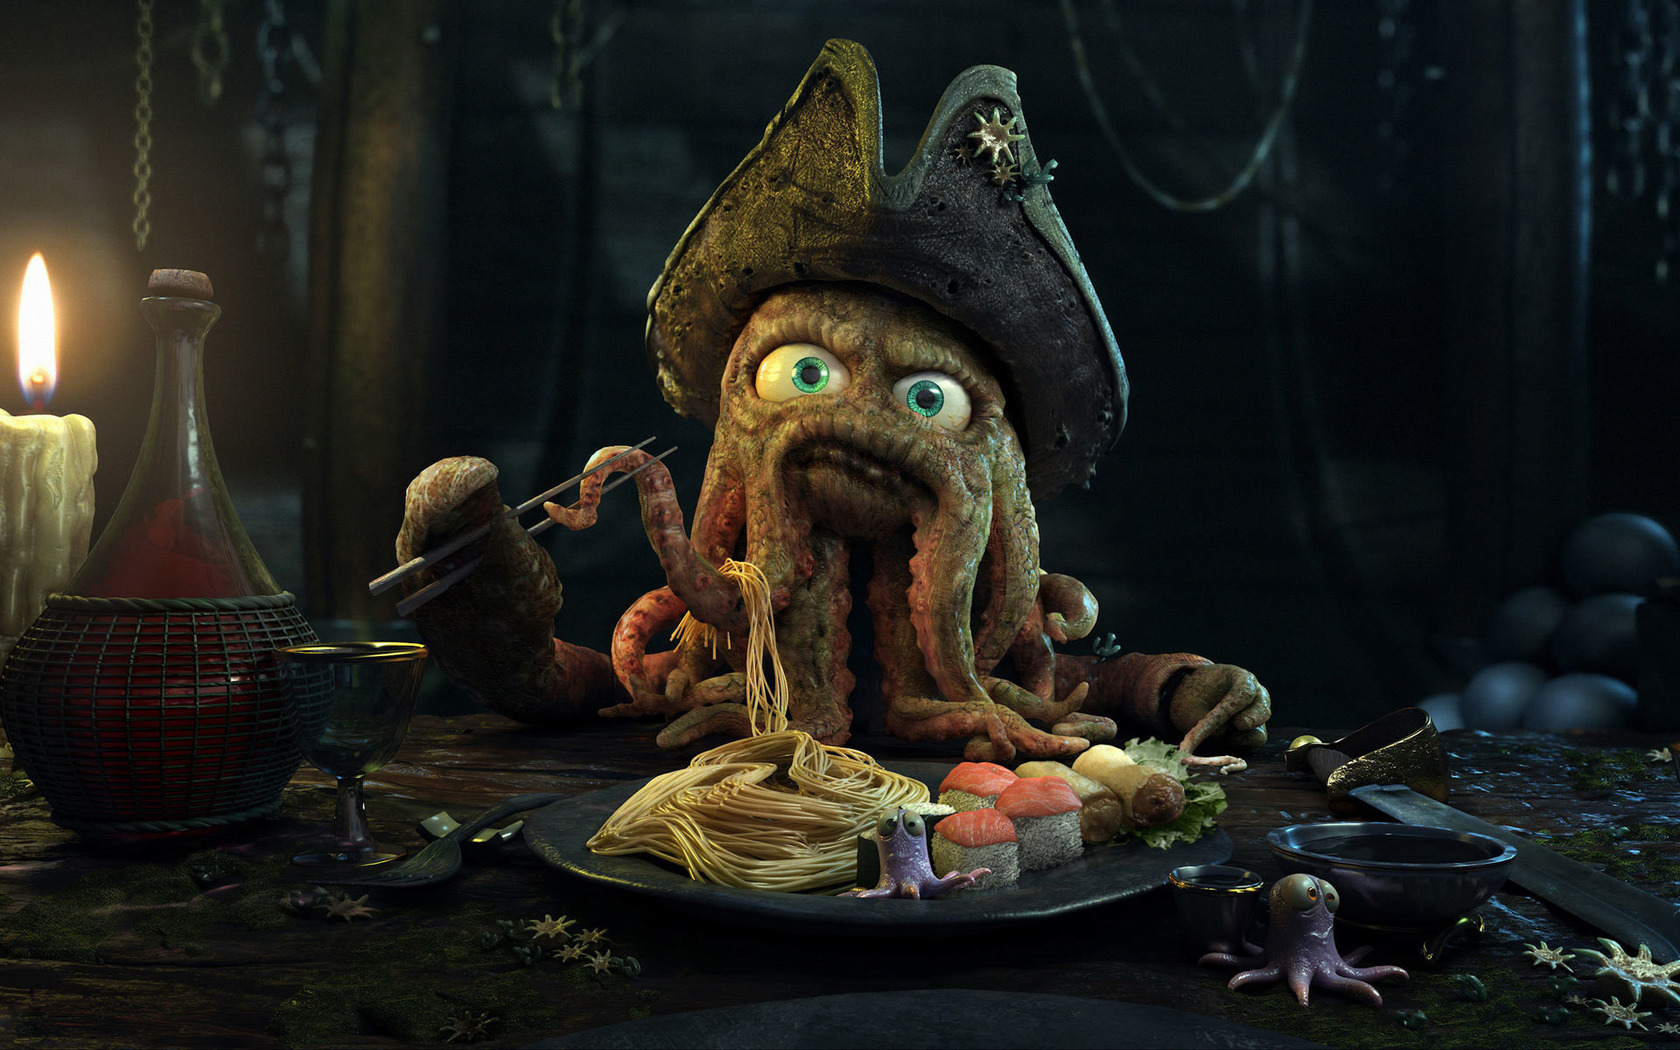 Octopus pirate at dinner